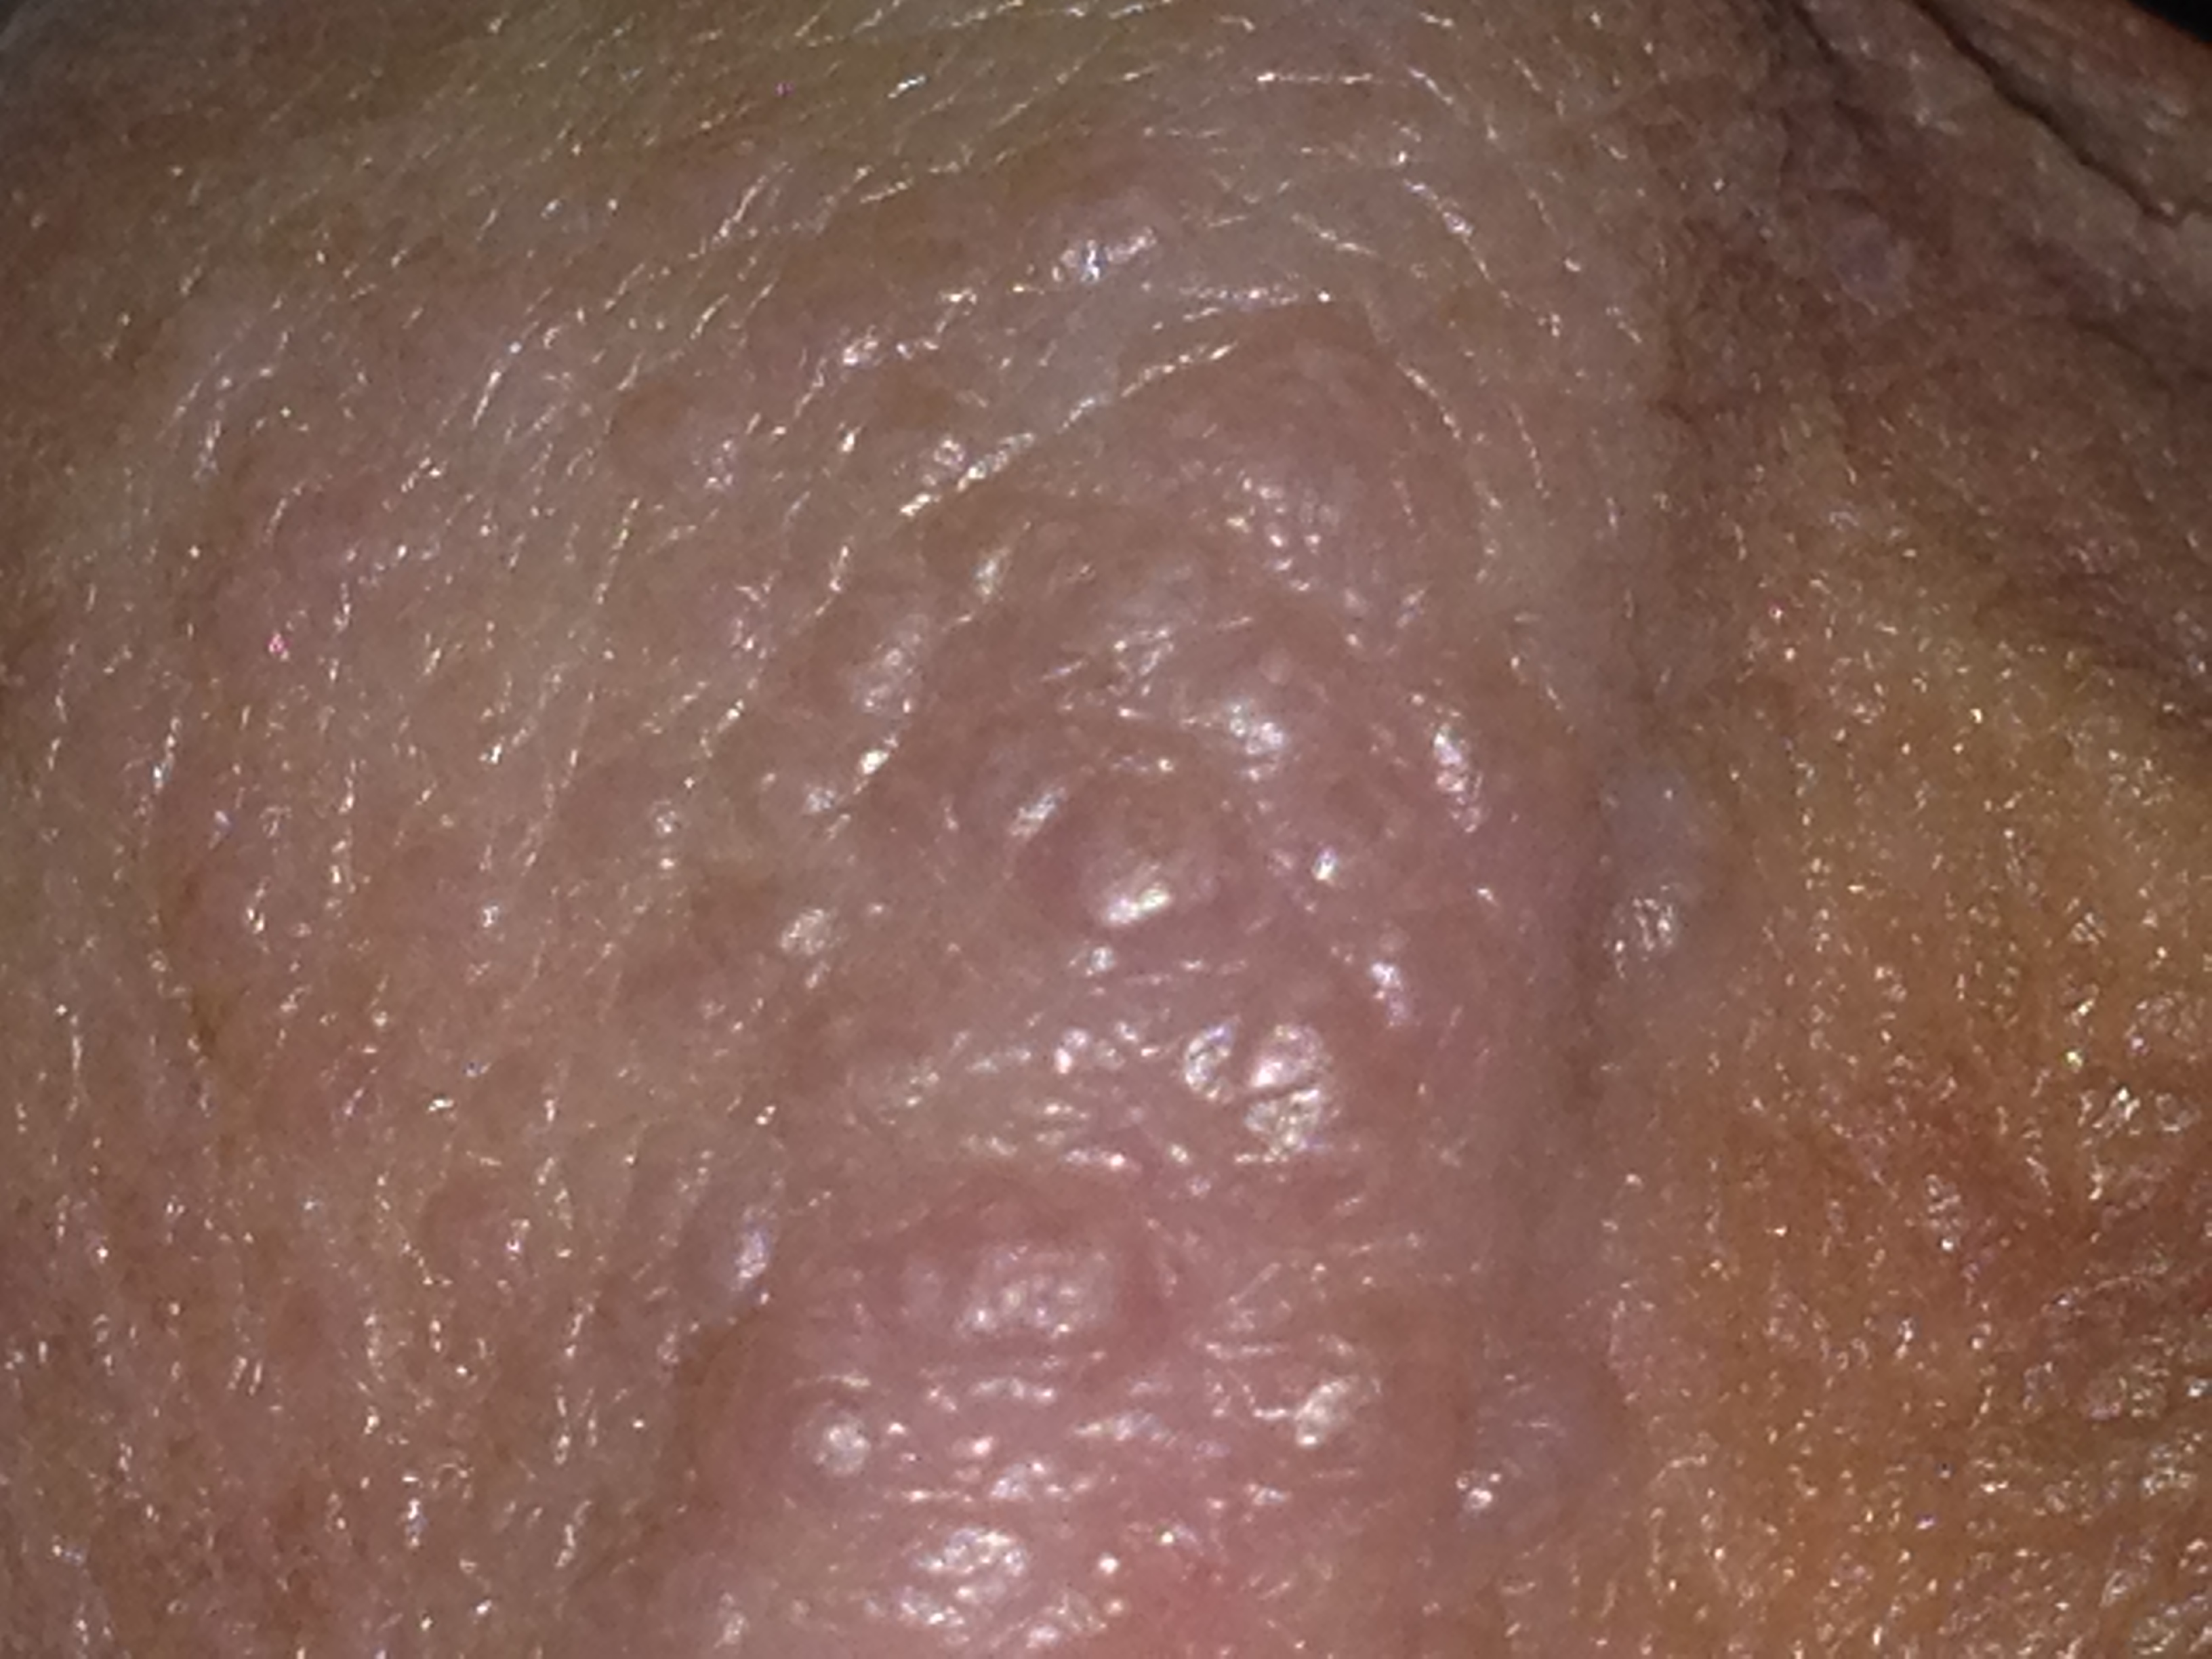 Bump penis picture white